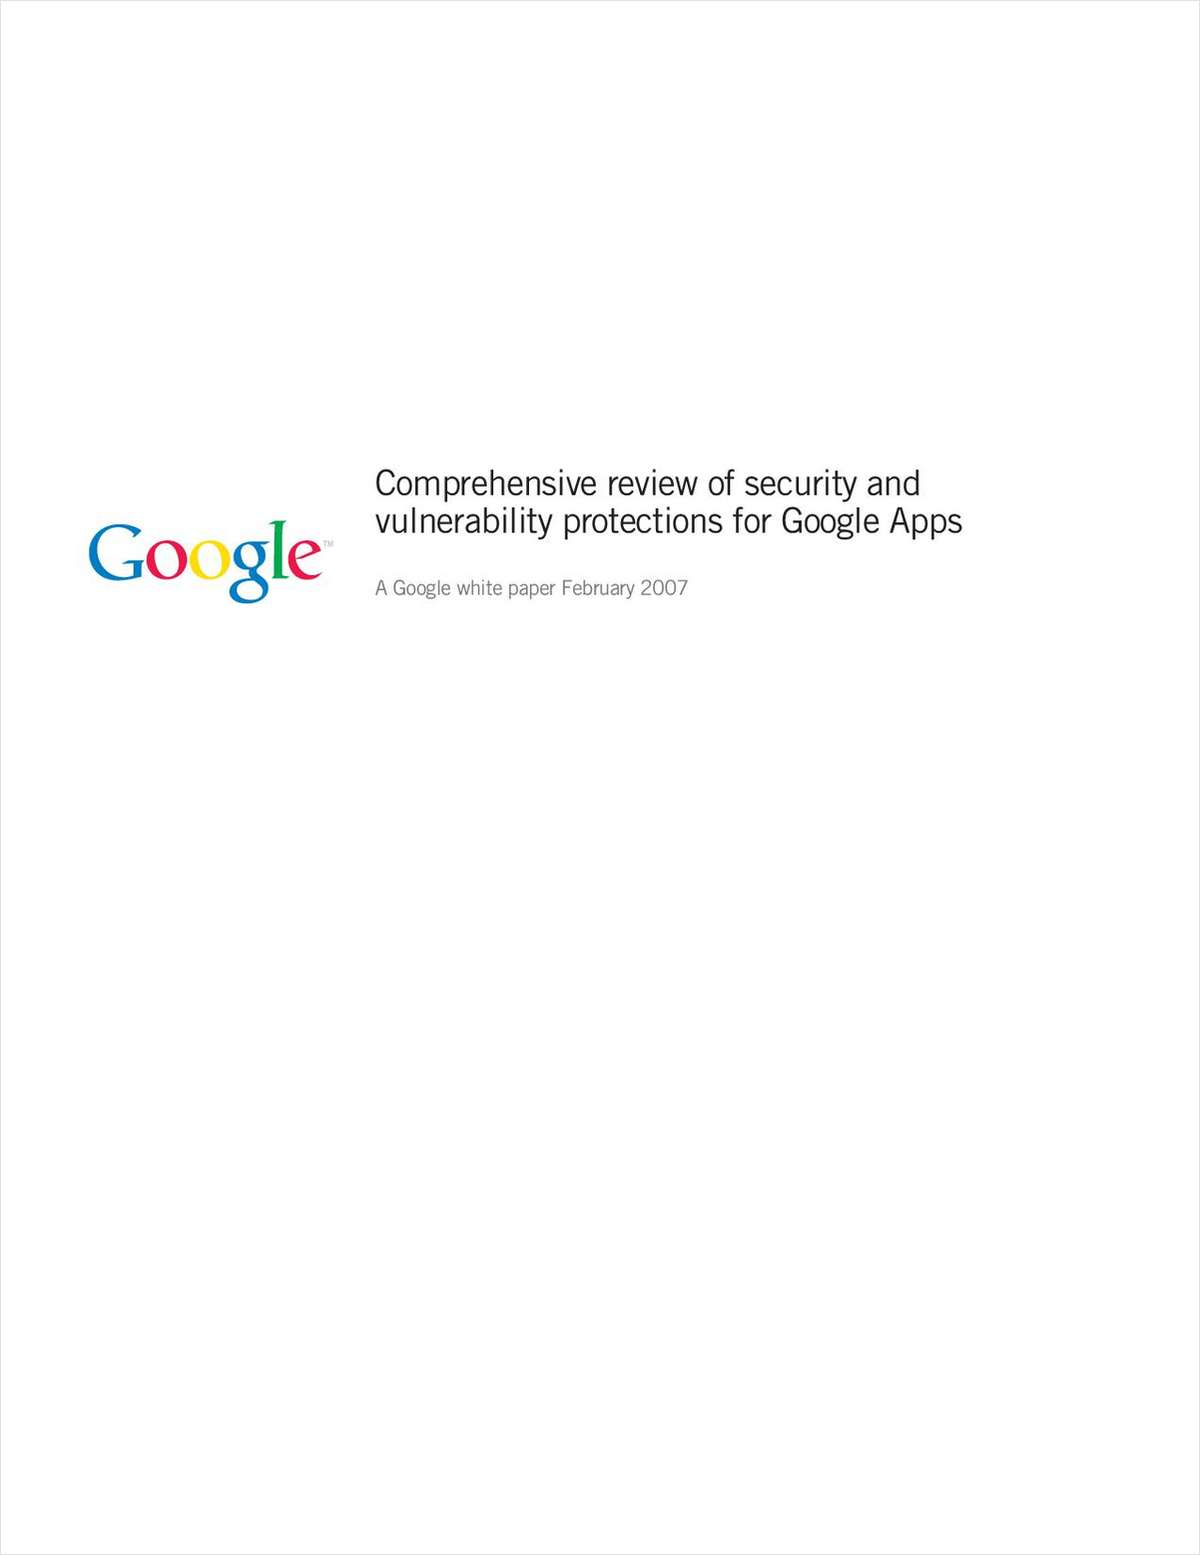 Comprehensive Review of Security and Vulnerability Protections for Google Apps